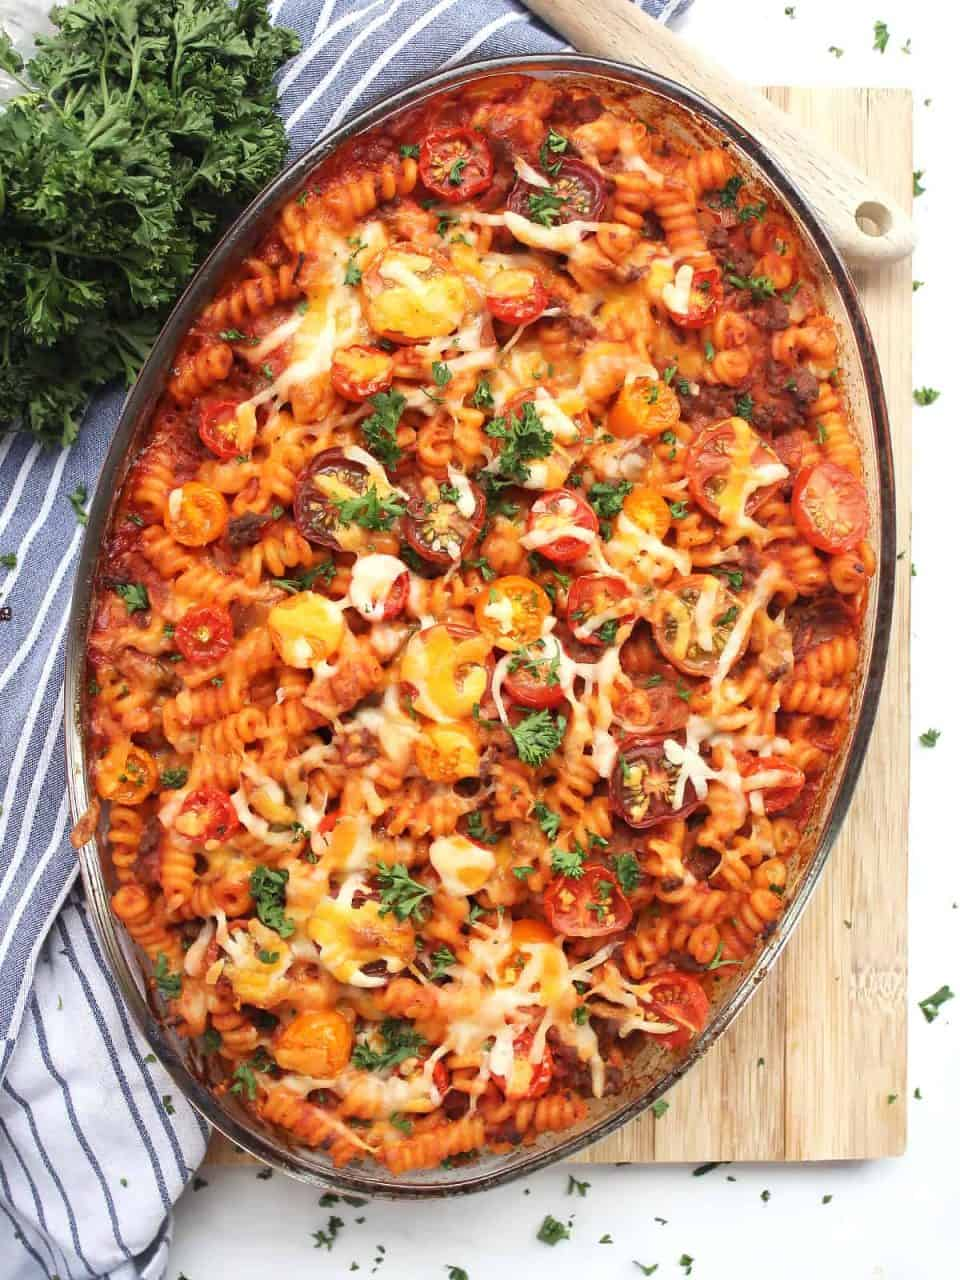 Baked ground beef pasta bake in a glass dish on a wooden chopping board.